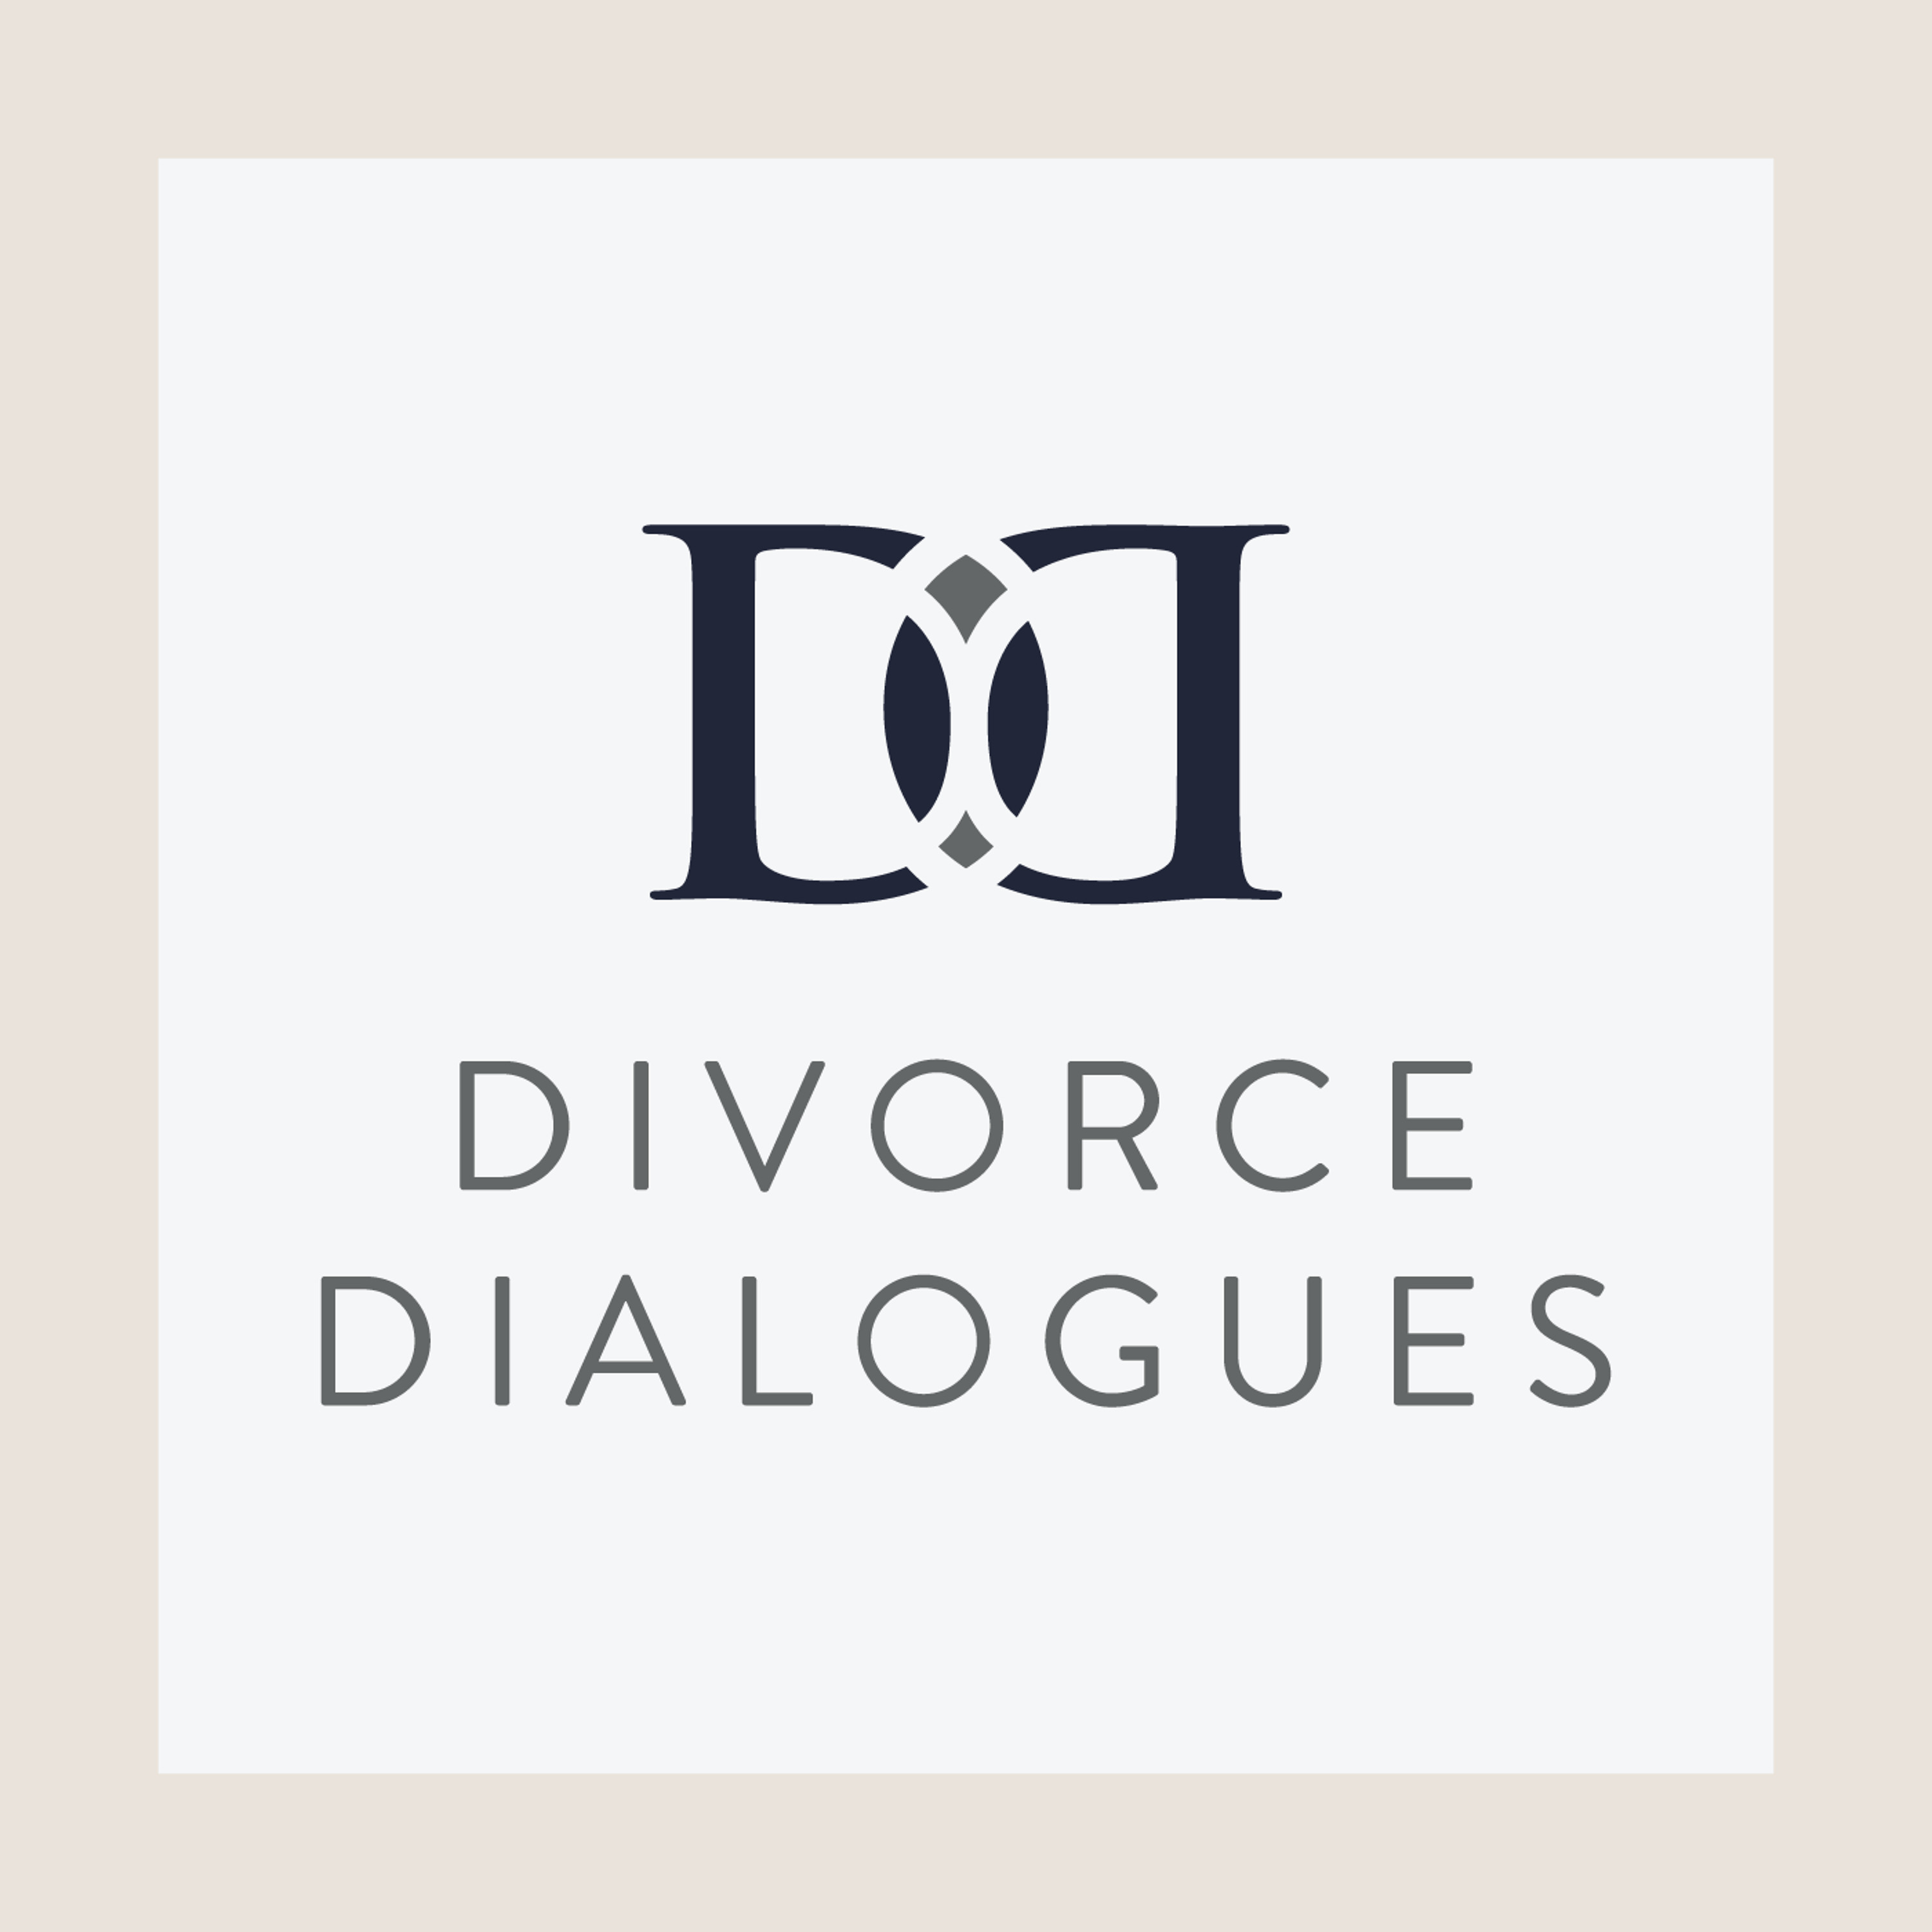 Divorce Dialogues - A Mindful Approach to Divorce with Nancy Colier